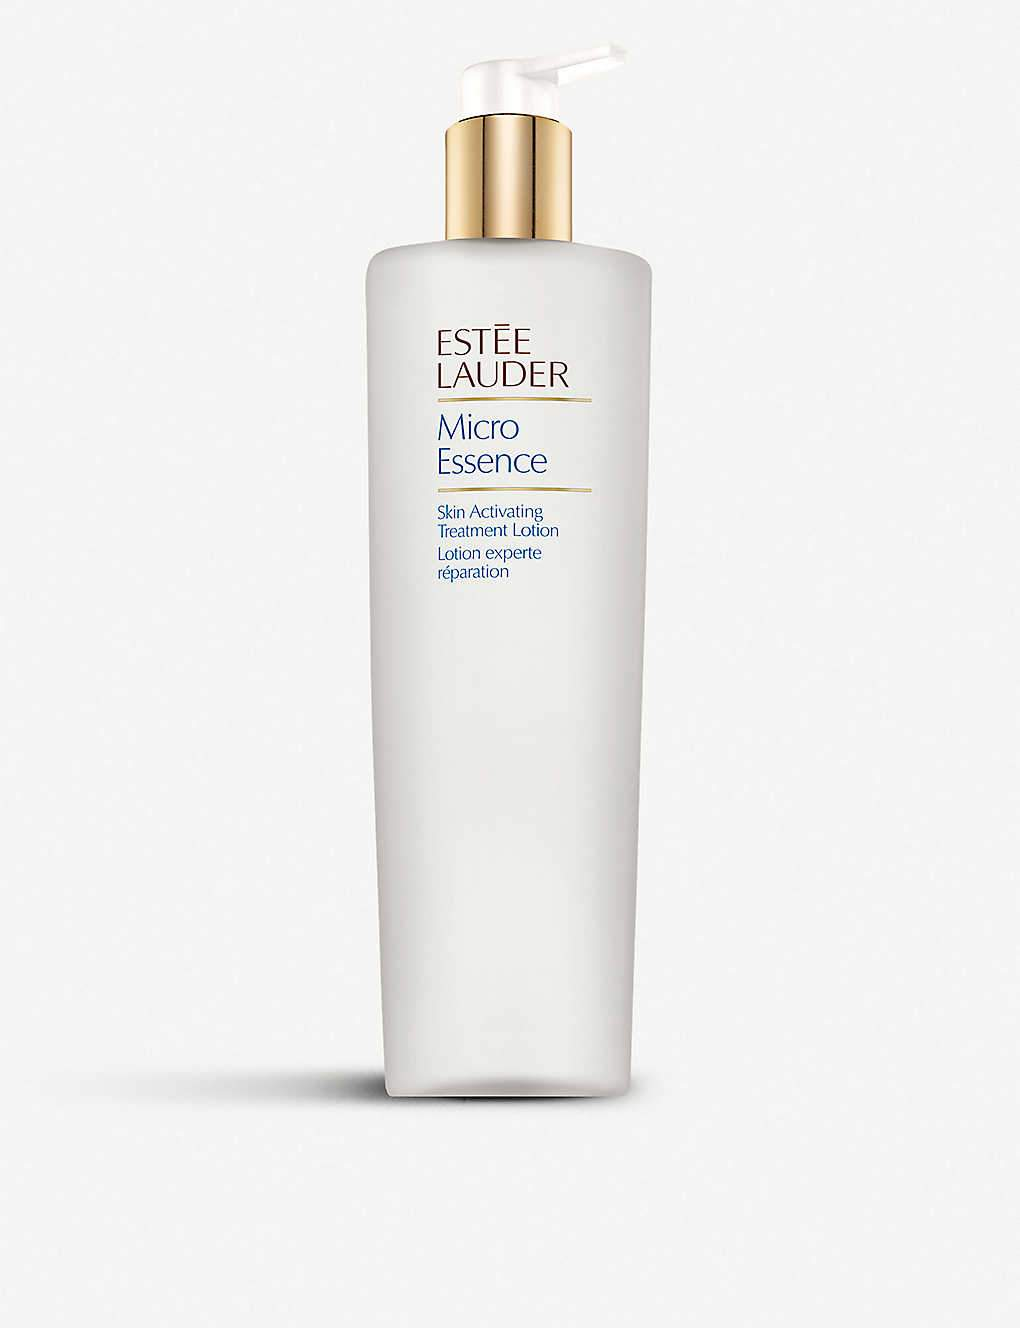 ESTEE LAUDER MICRO ESSENCE SKIN ACTIVATING TREATMENT LOTION 400ml